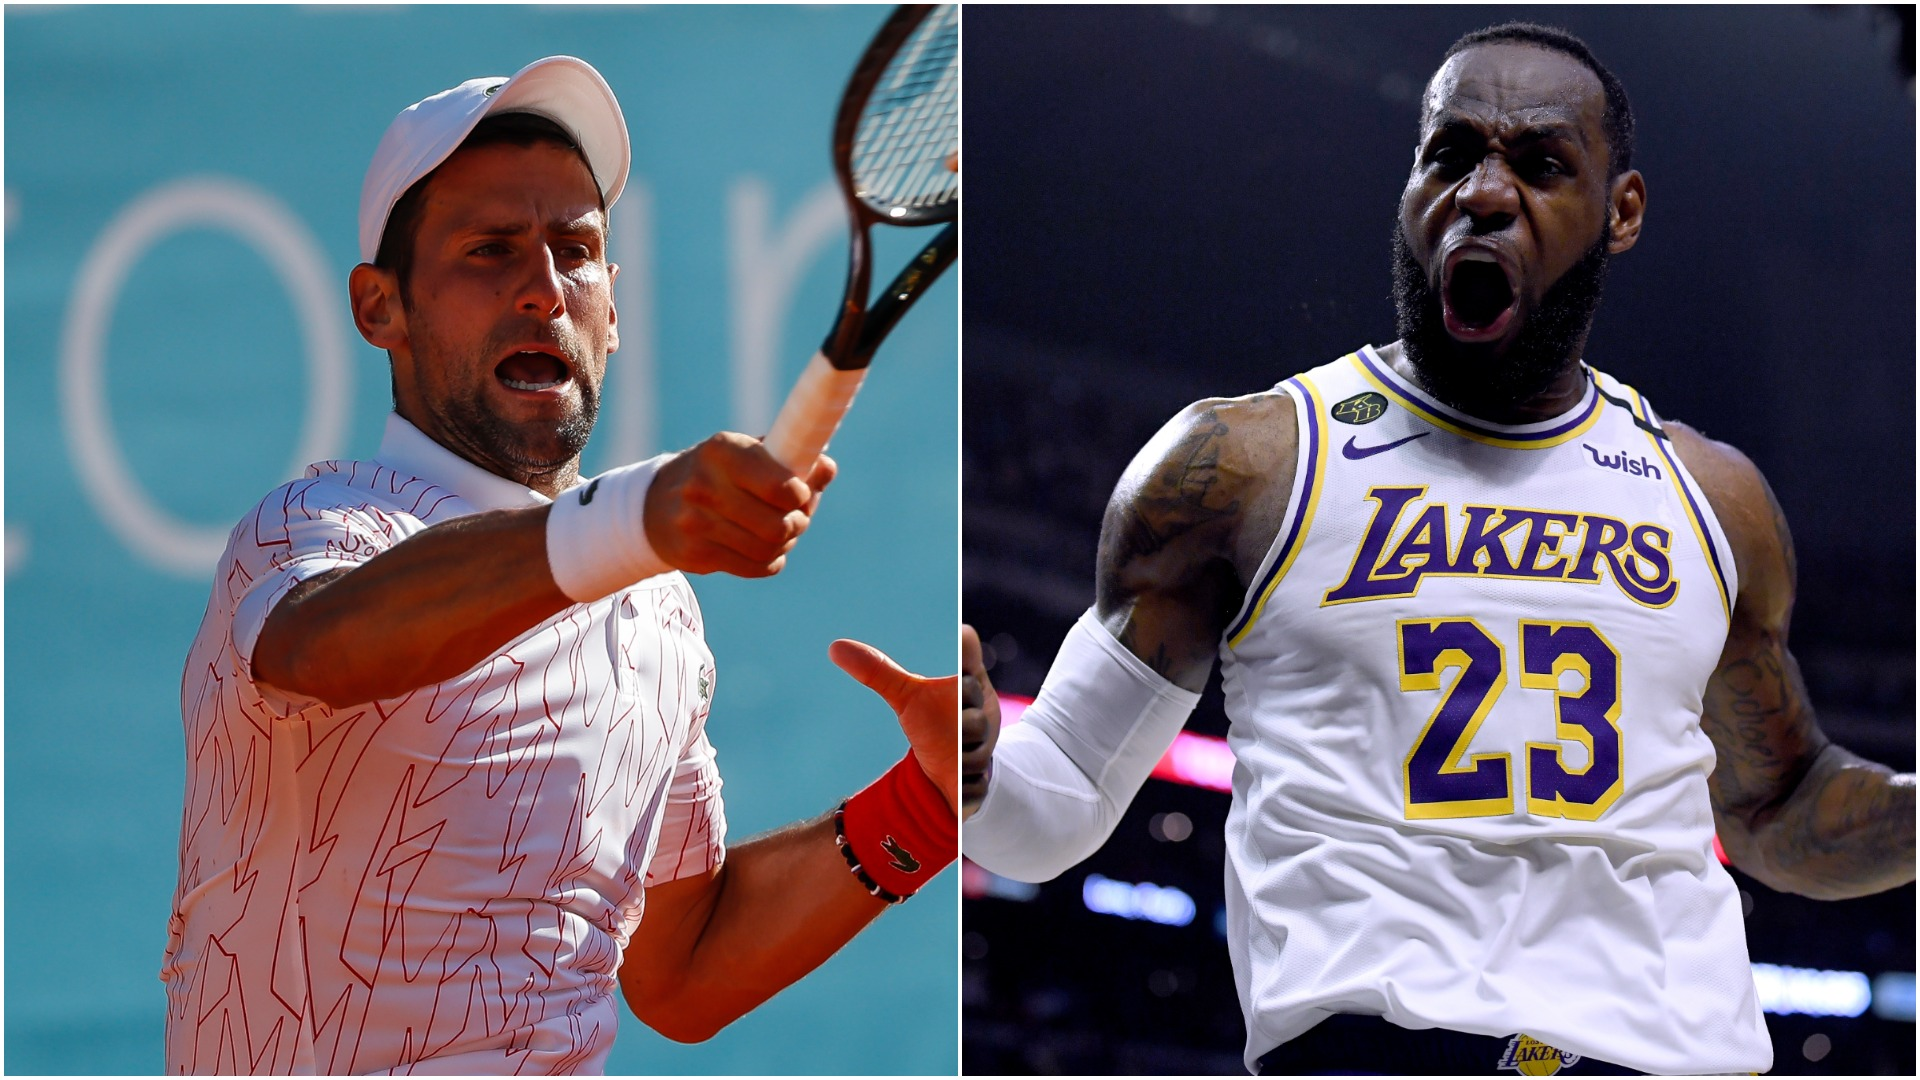 Djokovic wins compliment from Lebron James for basketball skills